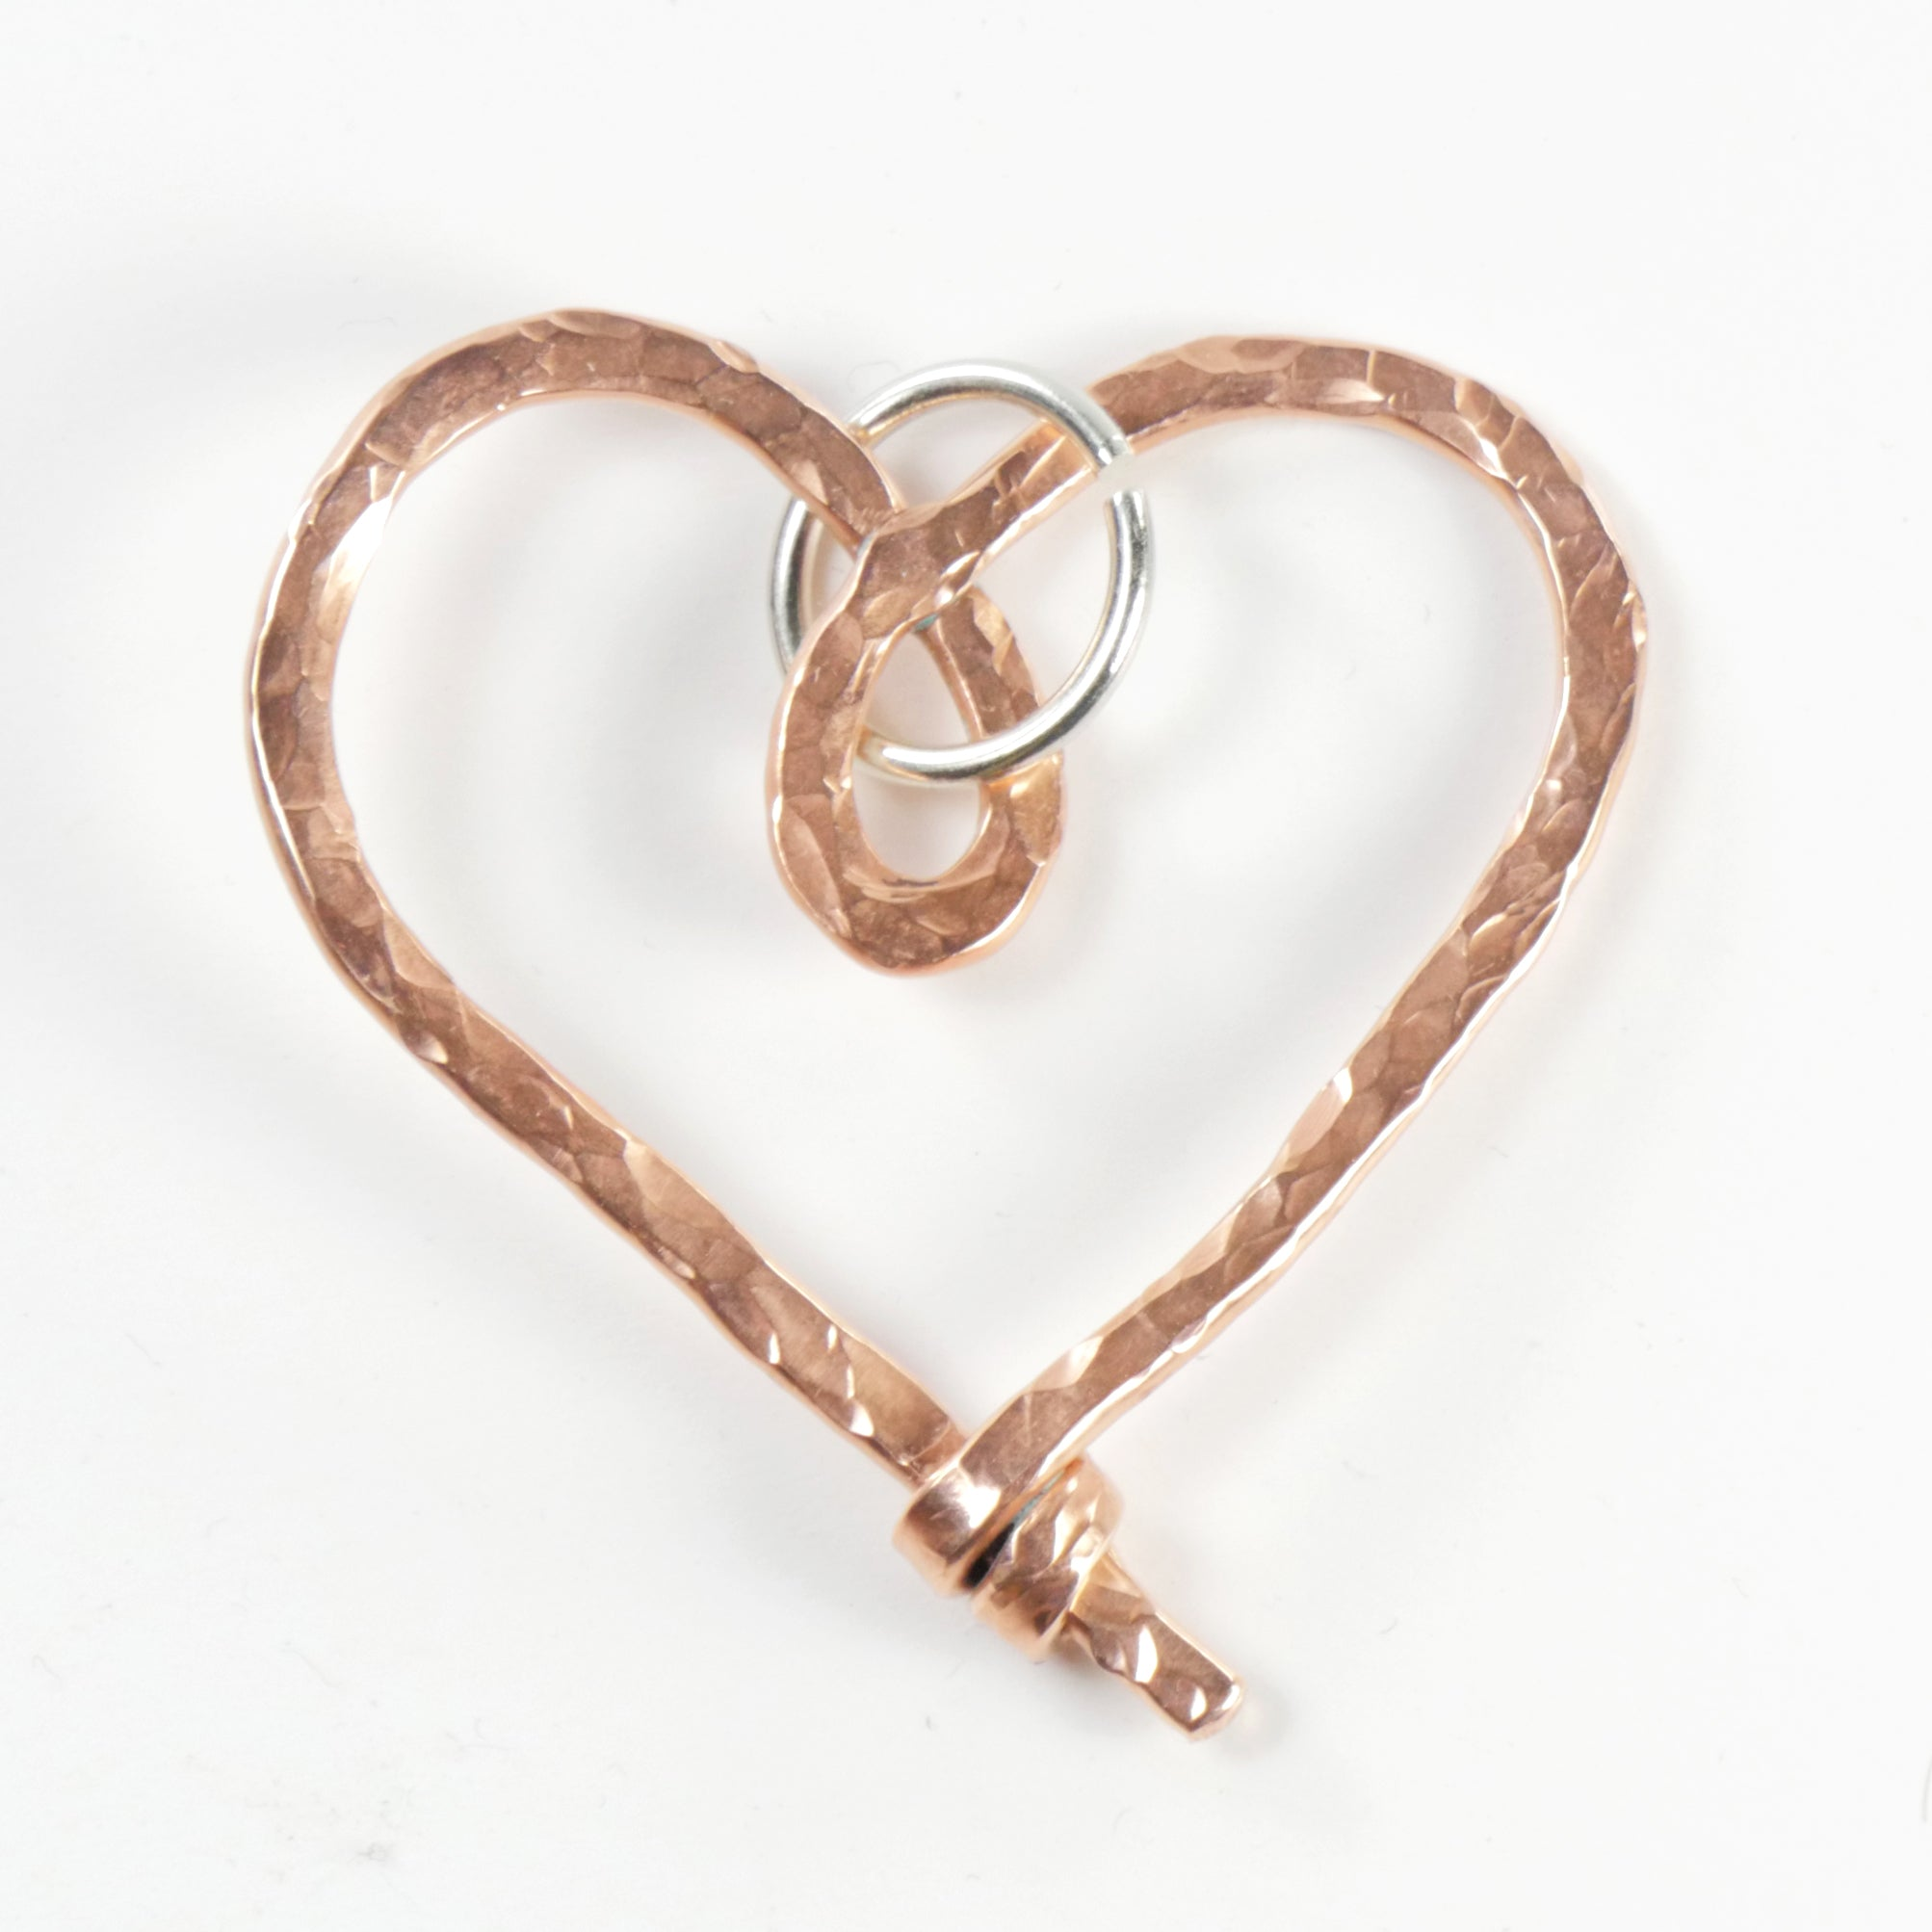 """Cherish"" Heart Ornament/Keycharm -Big C Copper, Local Coppersmith, American Made copper home goods, copper gifts, copper jewelry, 7th anniversary"